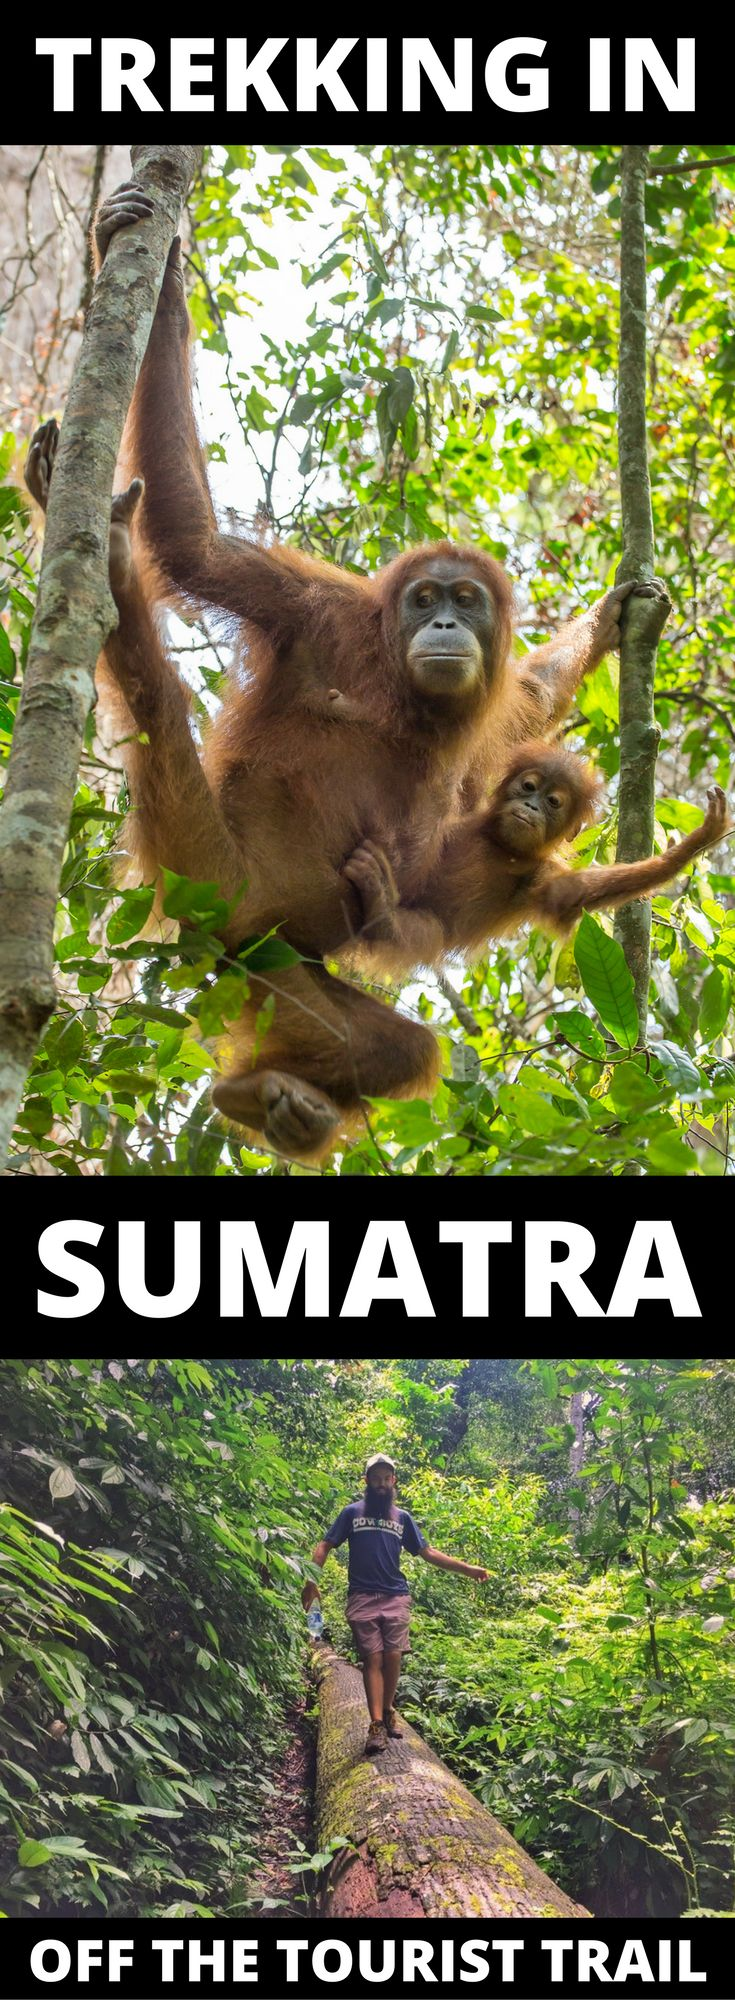 Visit Sumatra! In Gunung Leuser NP the best thing to do is see Orangutans but rather than in Bukit Lawang, go to Ketambe where you can see them 'wild'